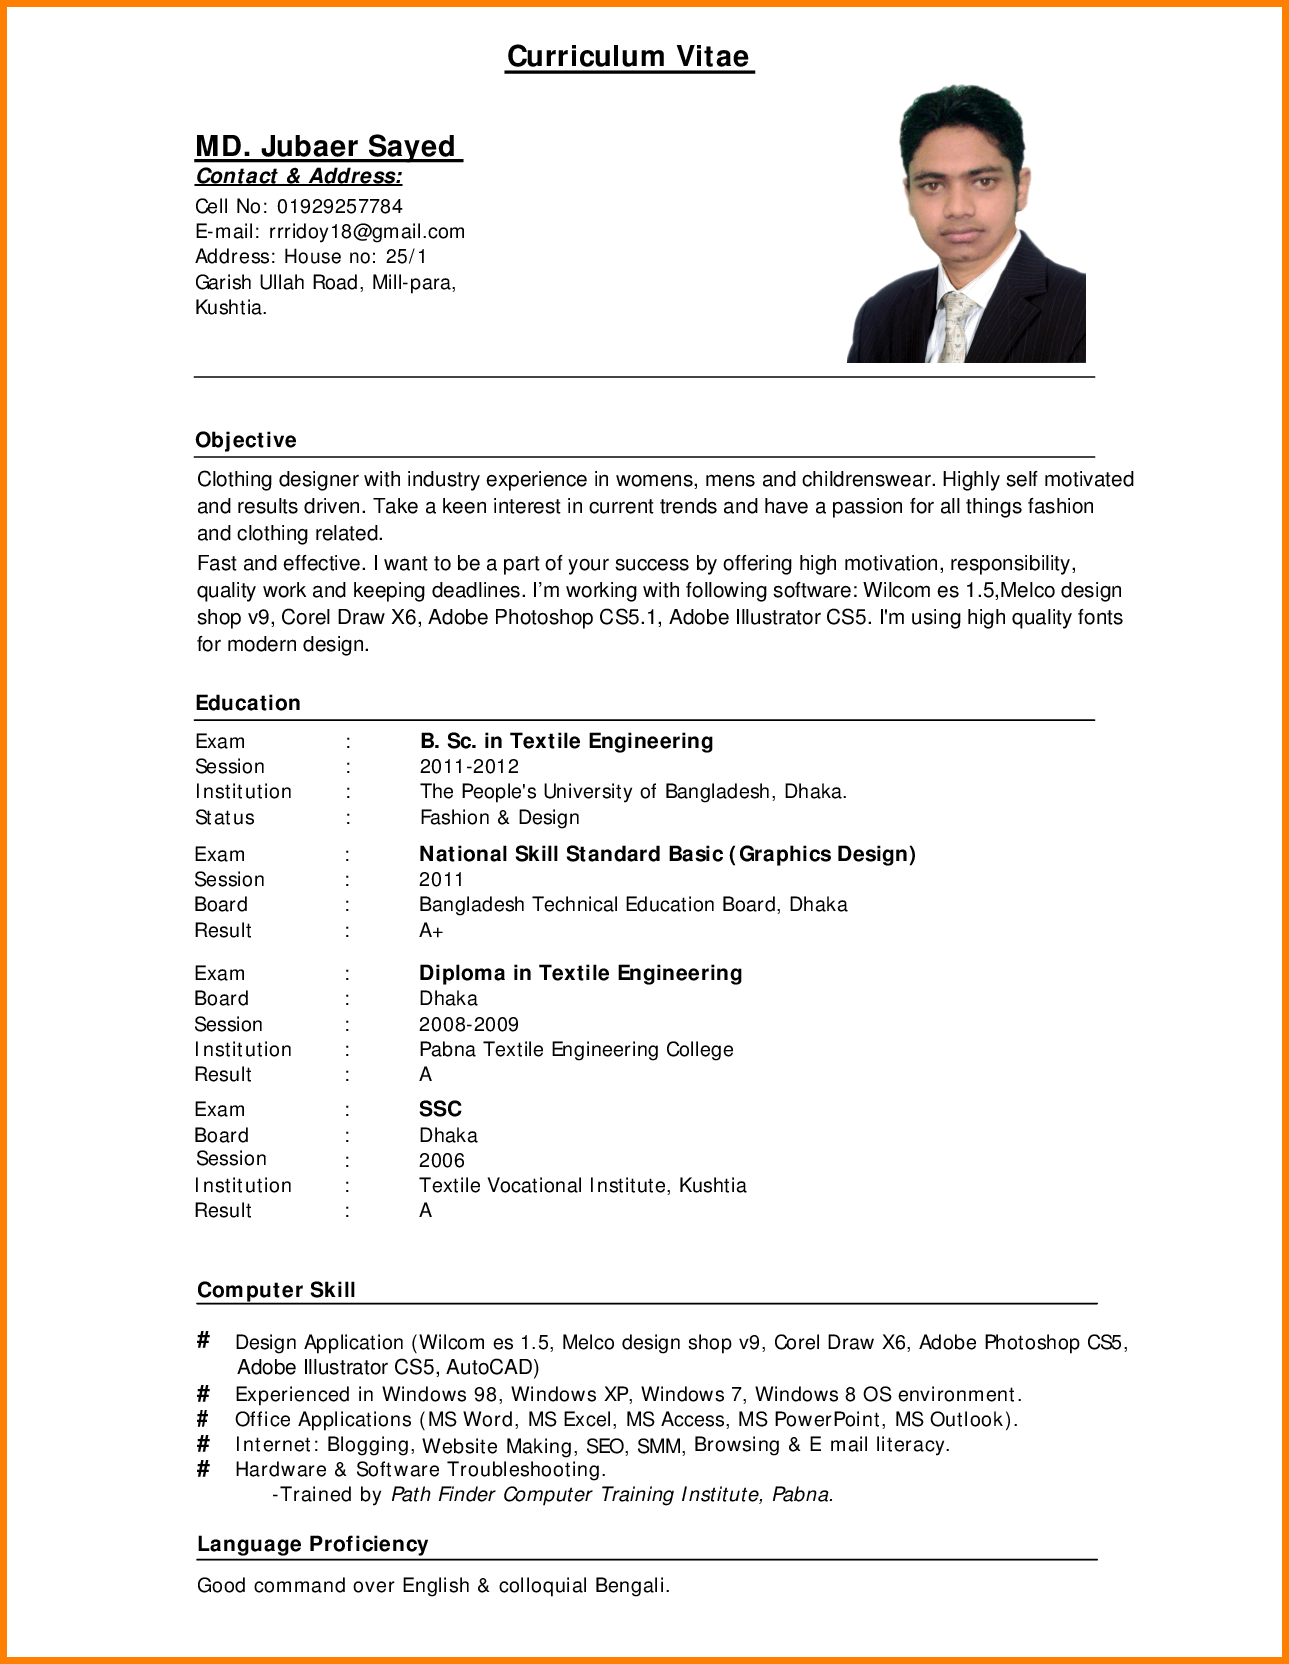 Wonderful Standard Cv Format Bangladesh Professional Resumes Sample Online Standard Cv  Format Bd On Cv Form